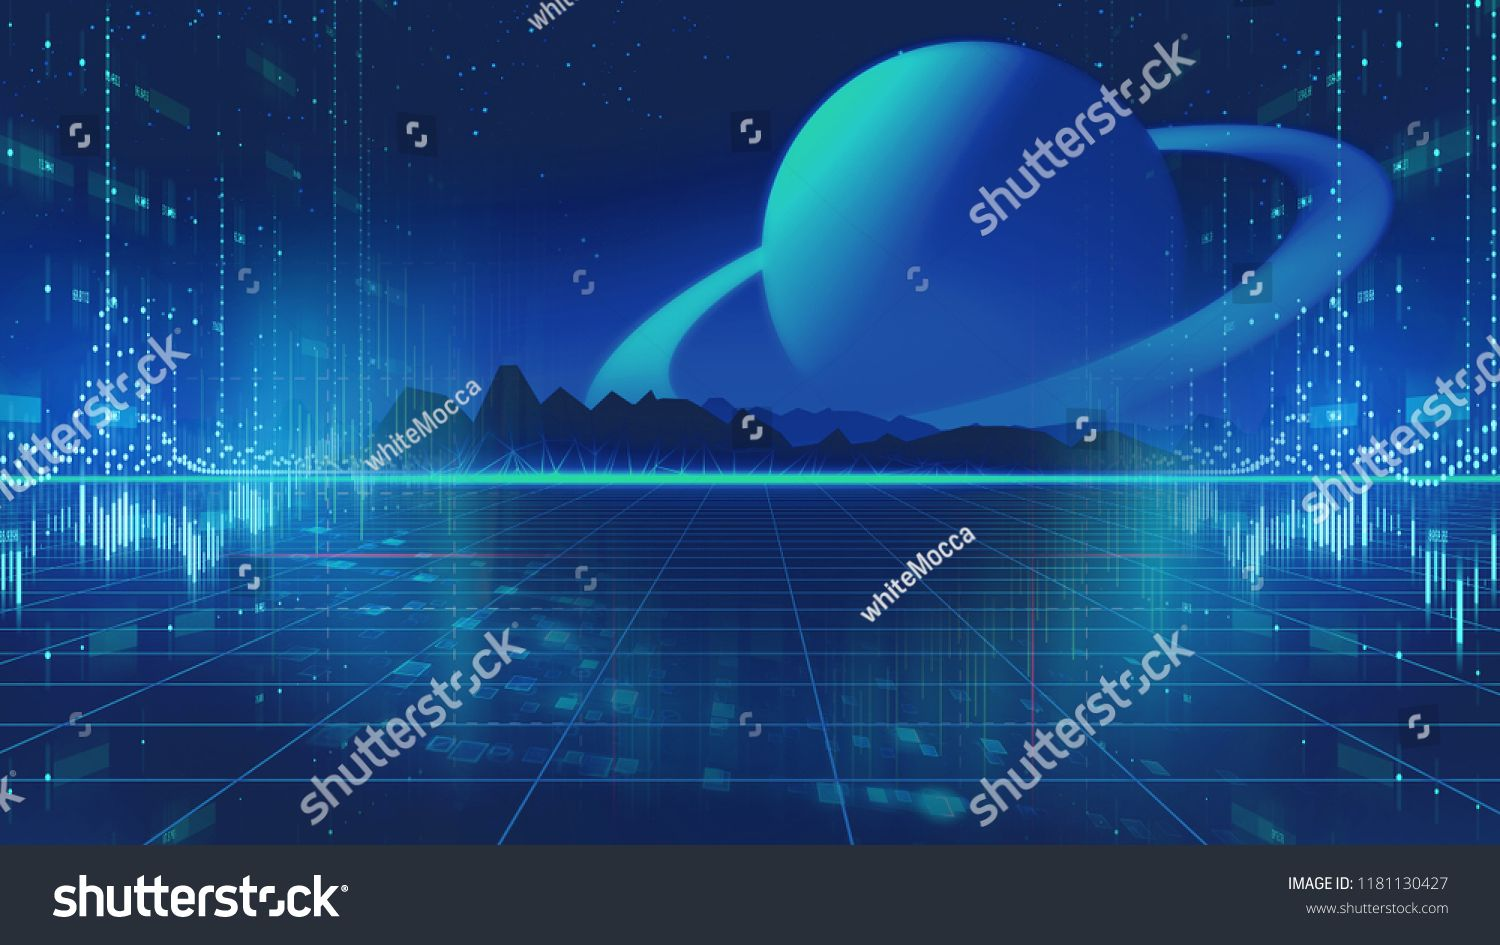 Retro Futuristic Background 1980s Style 3d Illustration Digital Landscape In A Cyber World For Use A Futuristic Background Music Album Cover Retro Futuristic